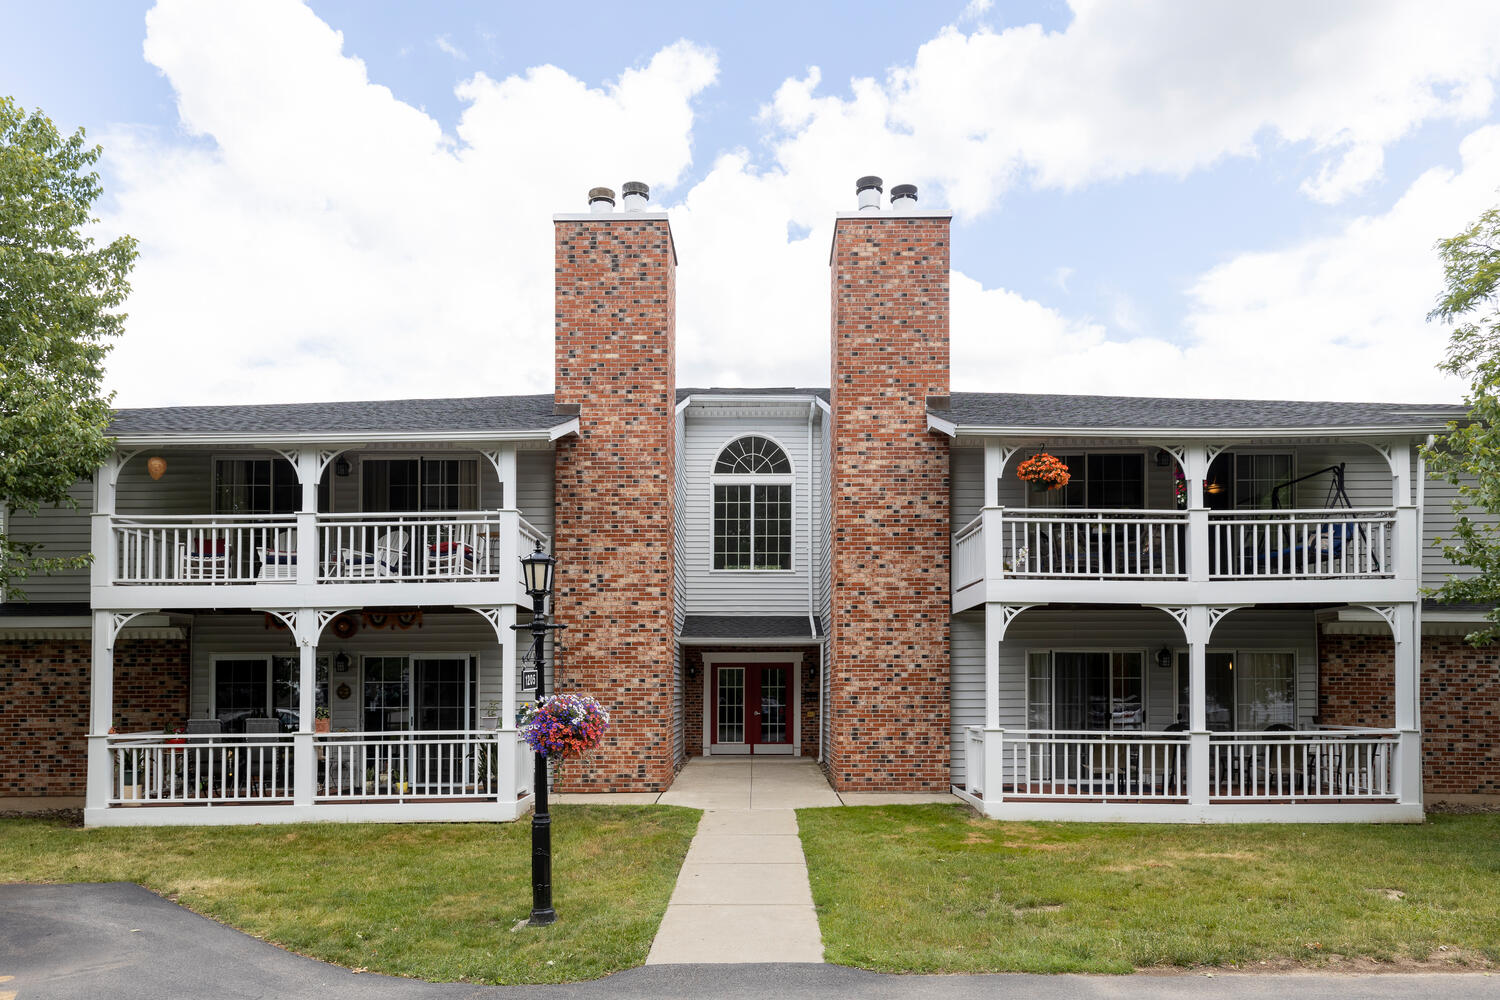 1205 Youngs Rd Unit APT F-large-001-010-Exterior Front-1500×1000-72dpi